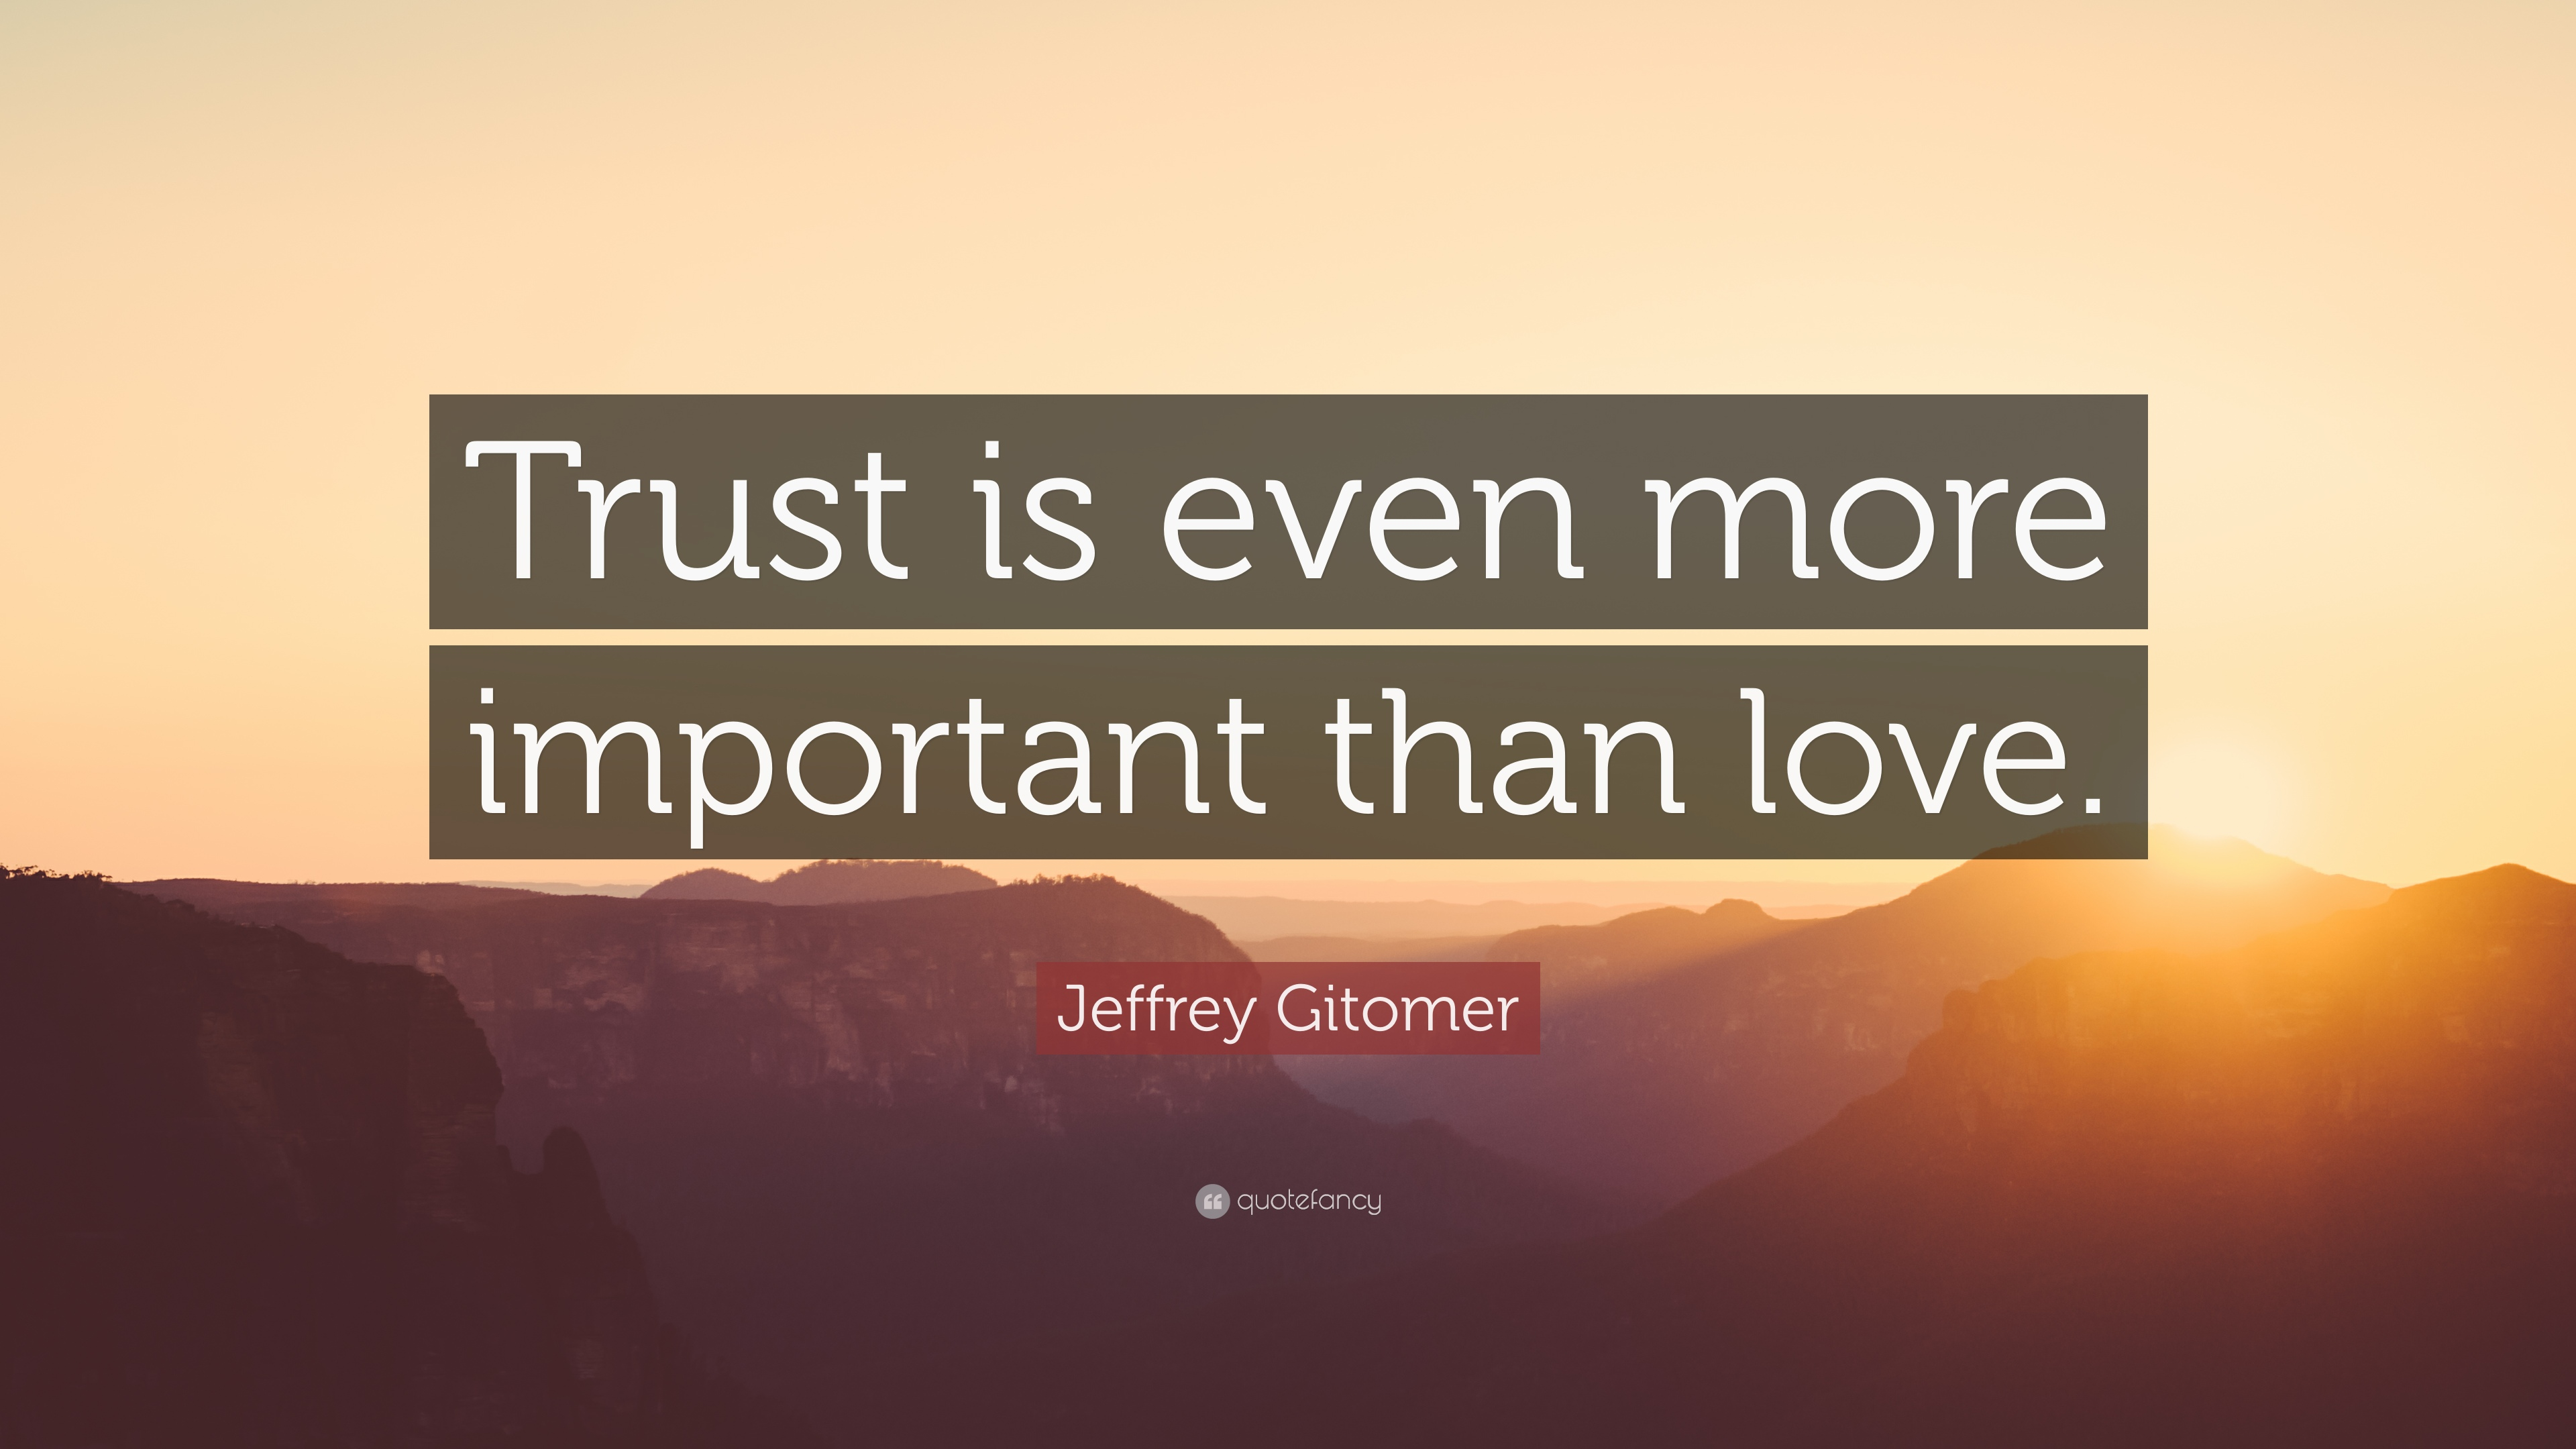 Why is love more important? 61